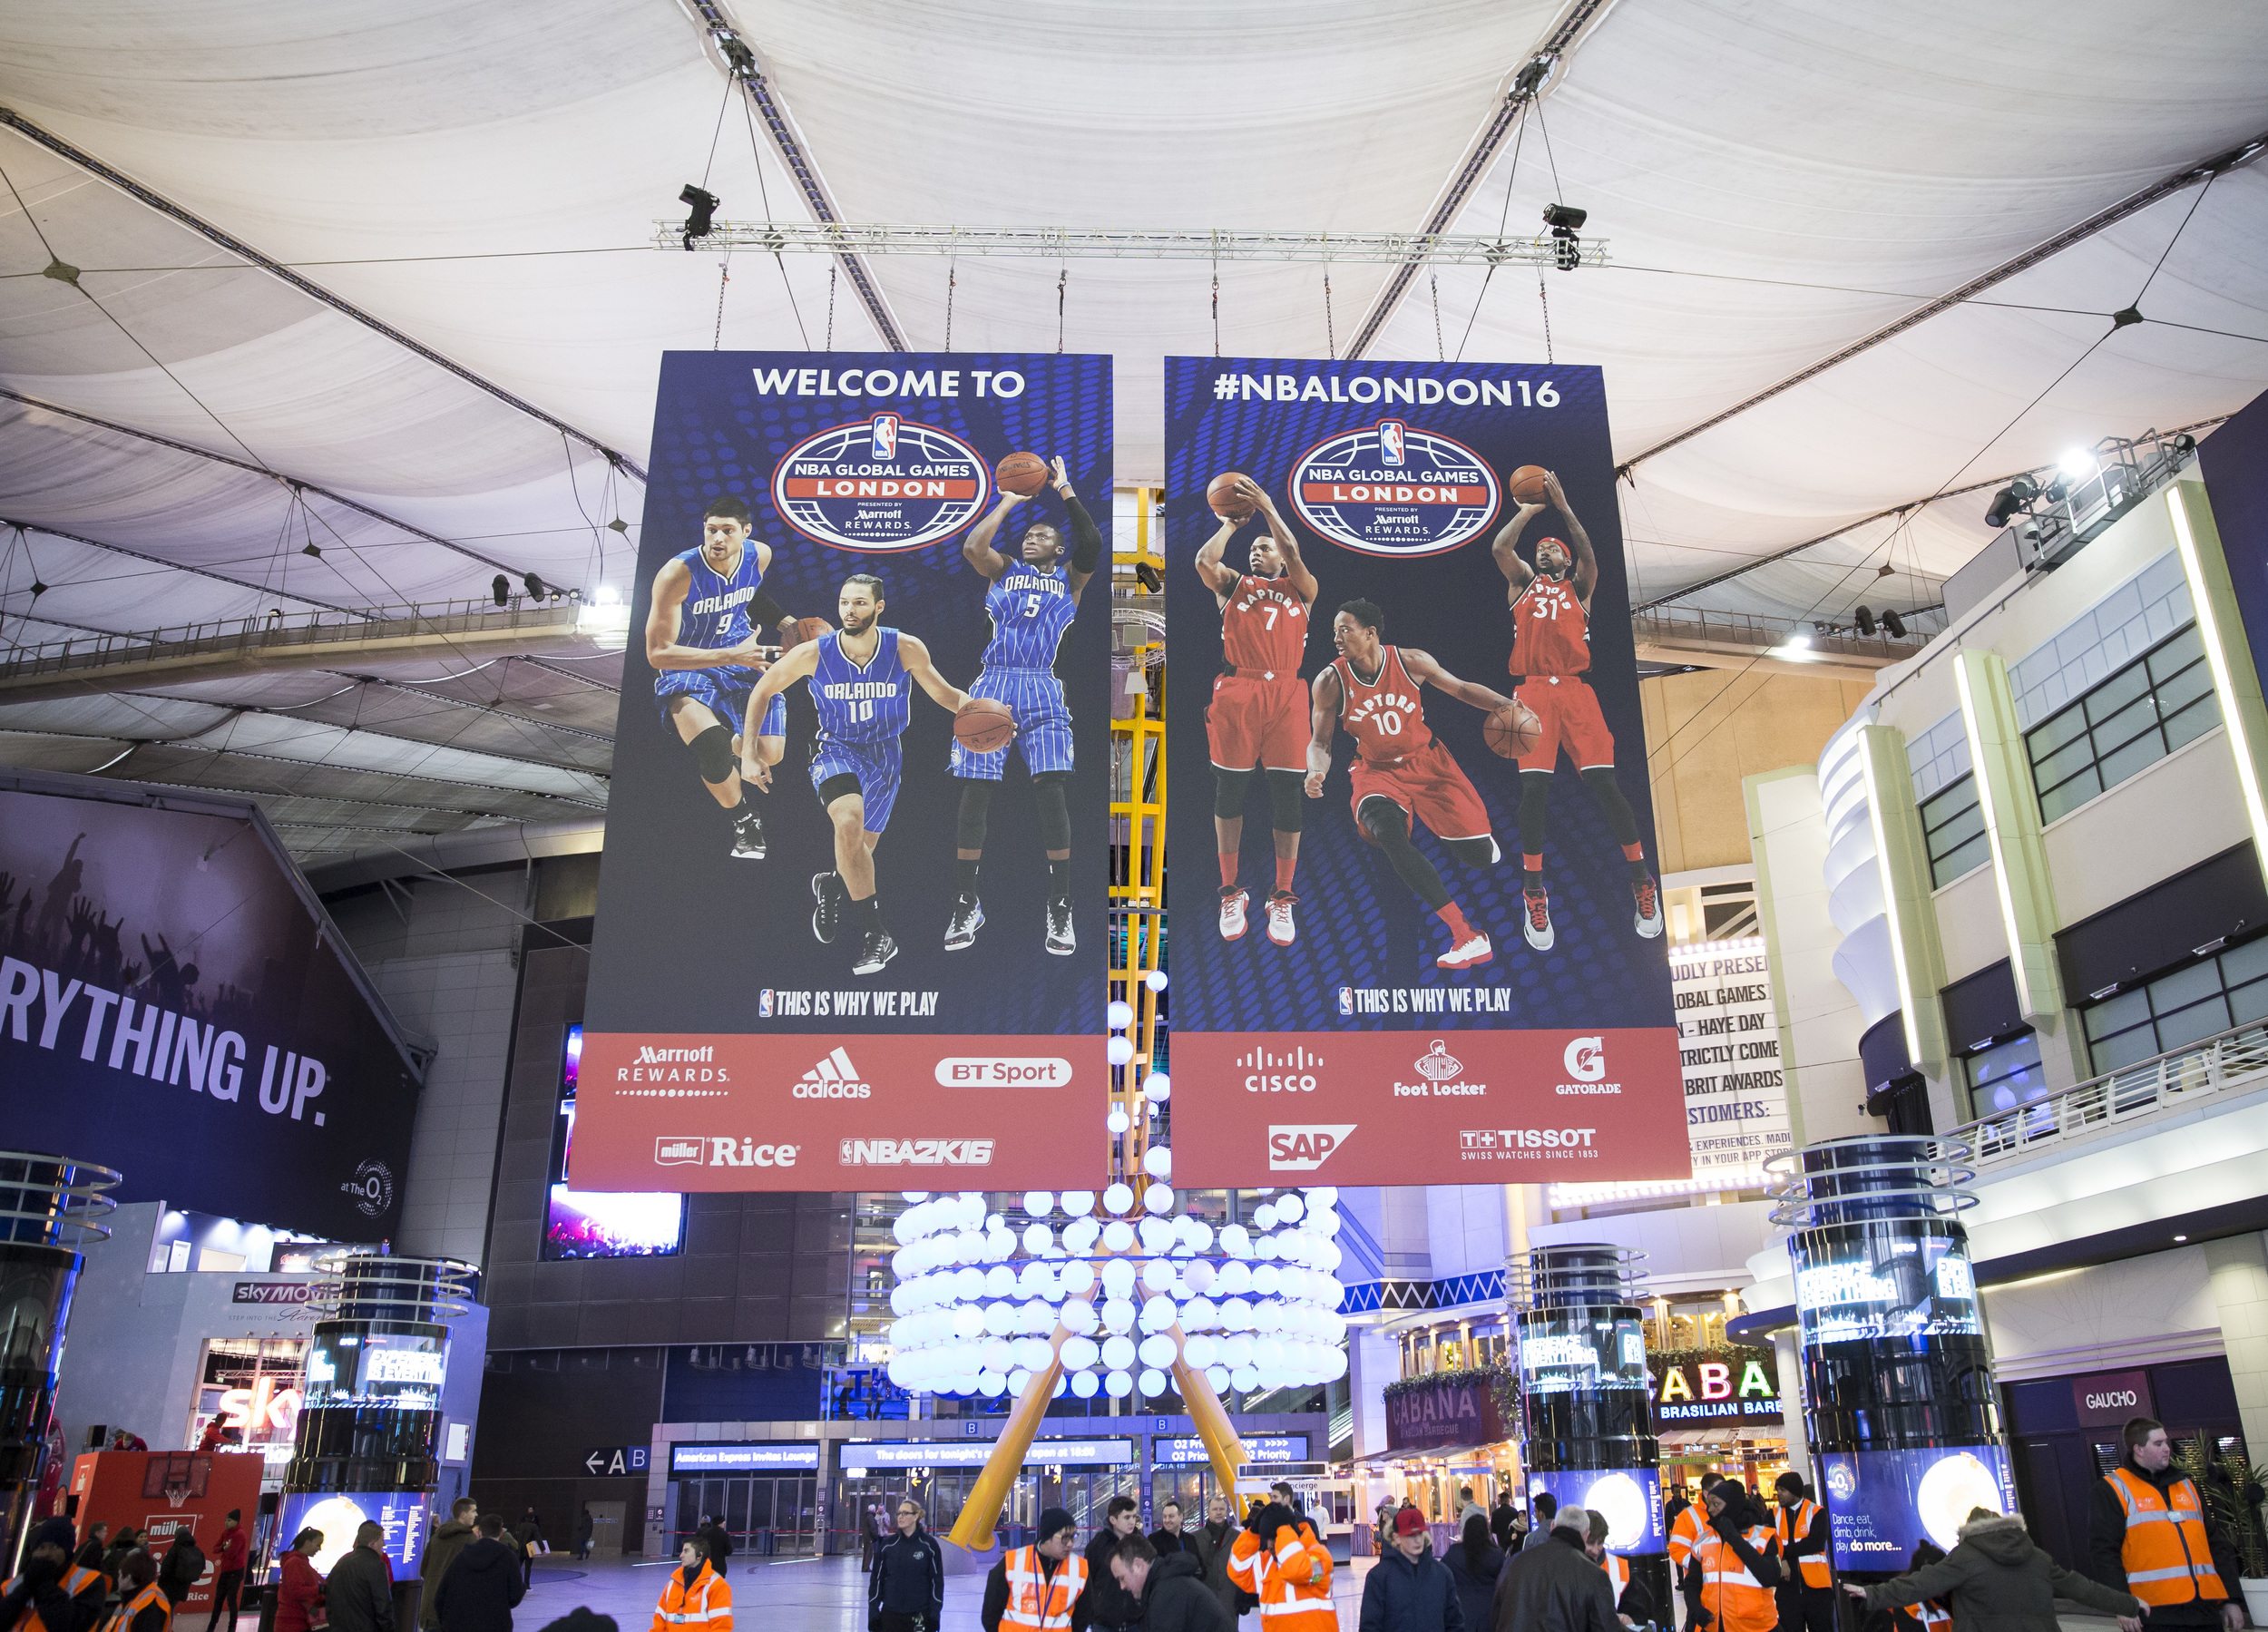 NBA_02_SIGNAGE_AND_DECOR35.JPG